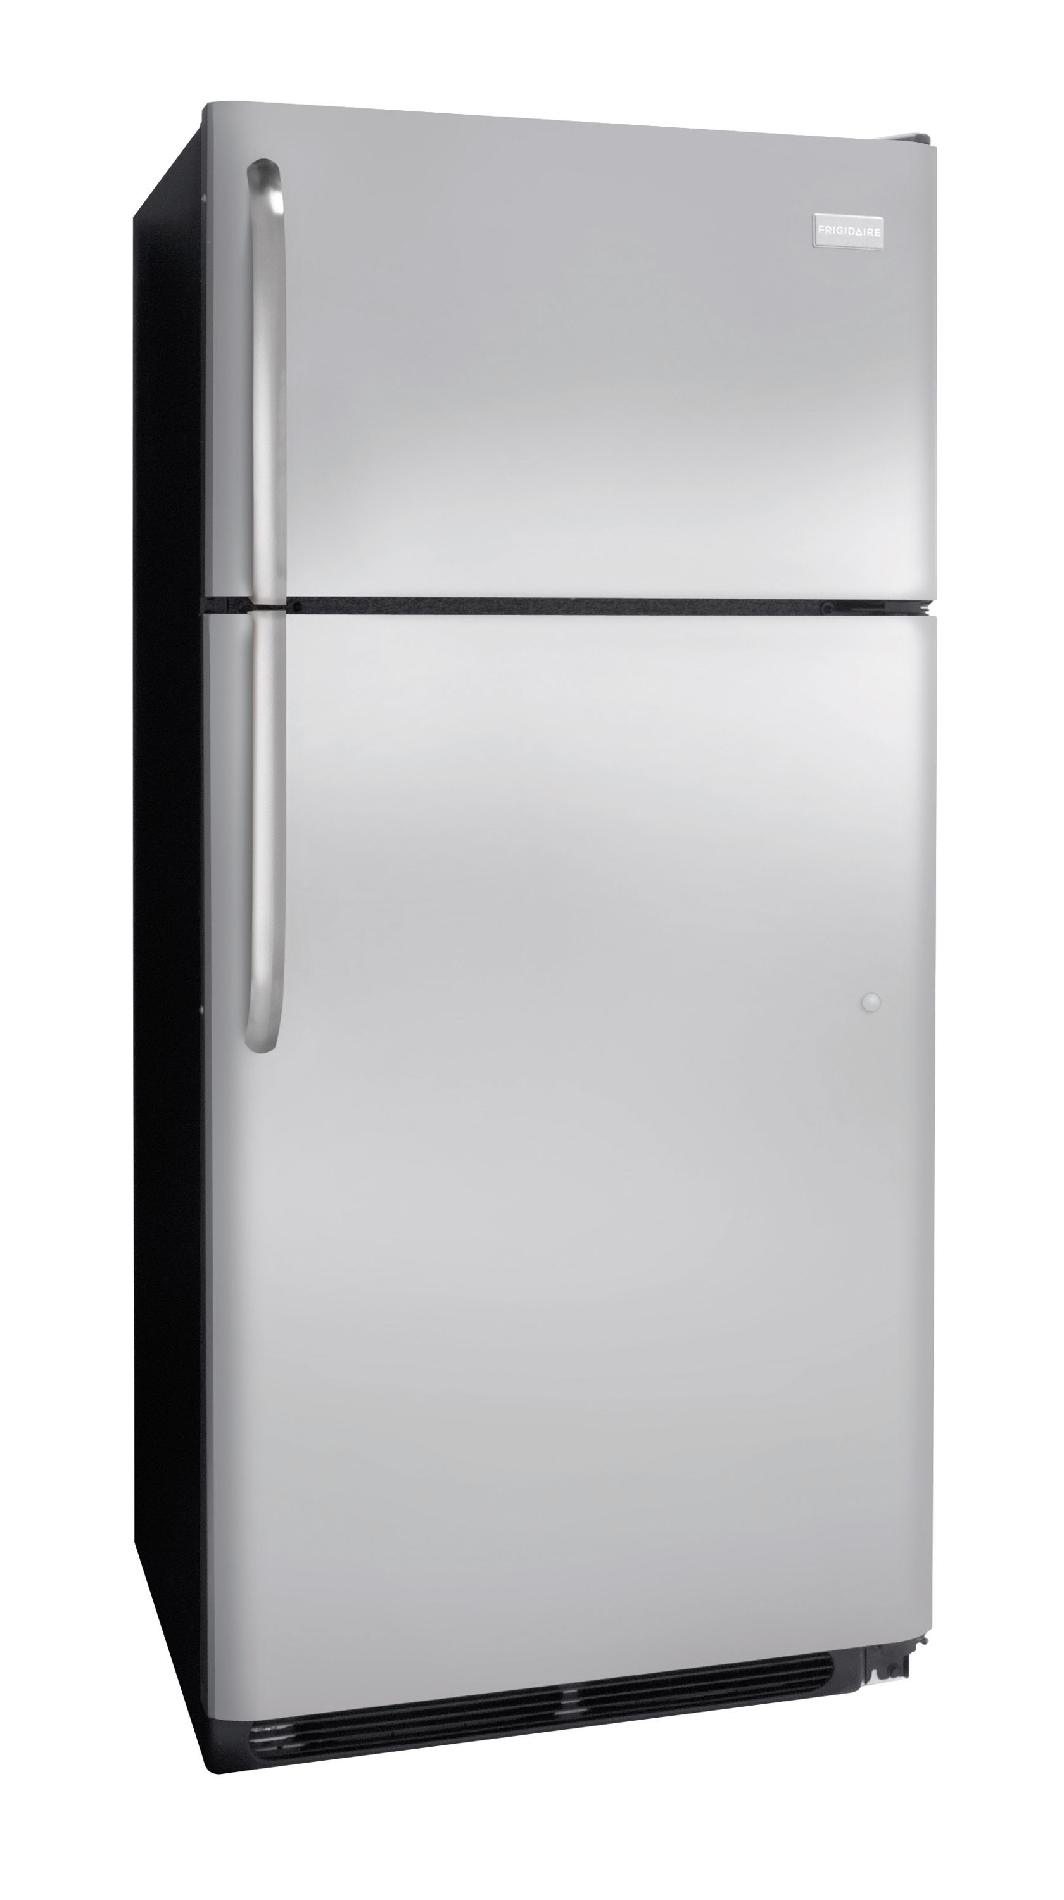 Frigidaire 18.2 cu. ft. Top-Freezer Refrigerator - Stainless Steel